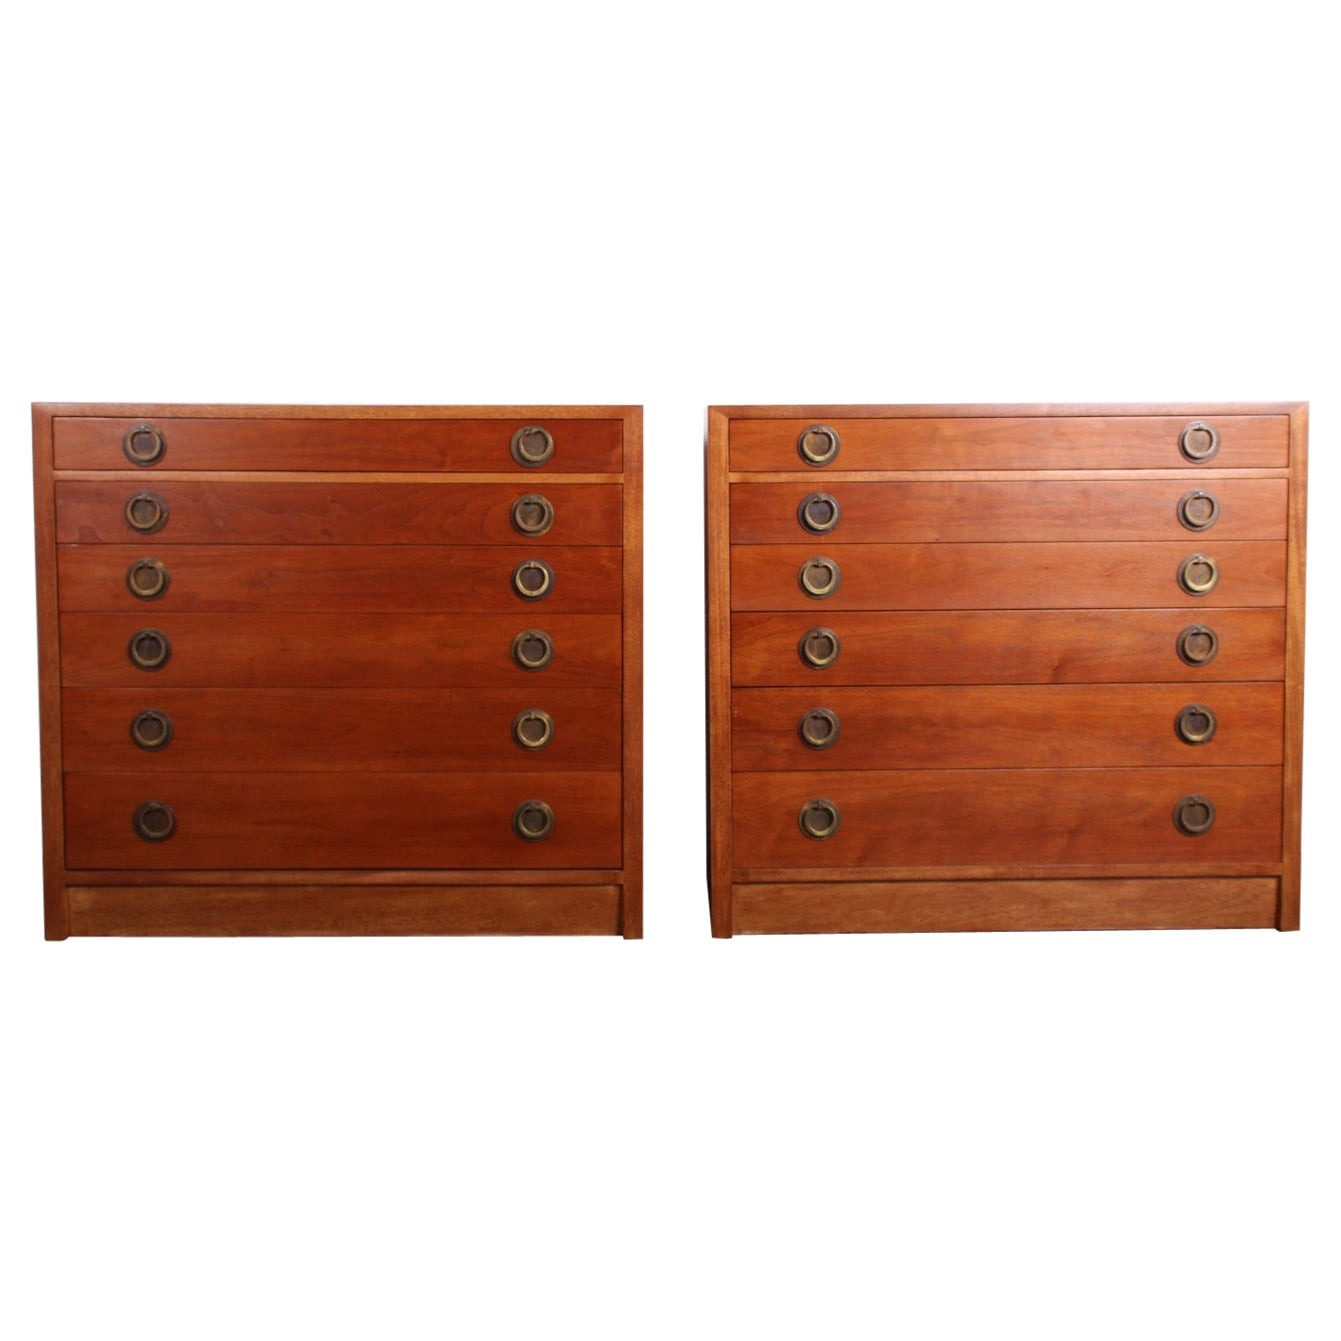 Pair of Chests by Edward Wormley for Dunbar